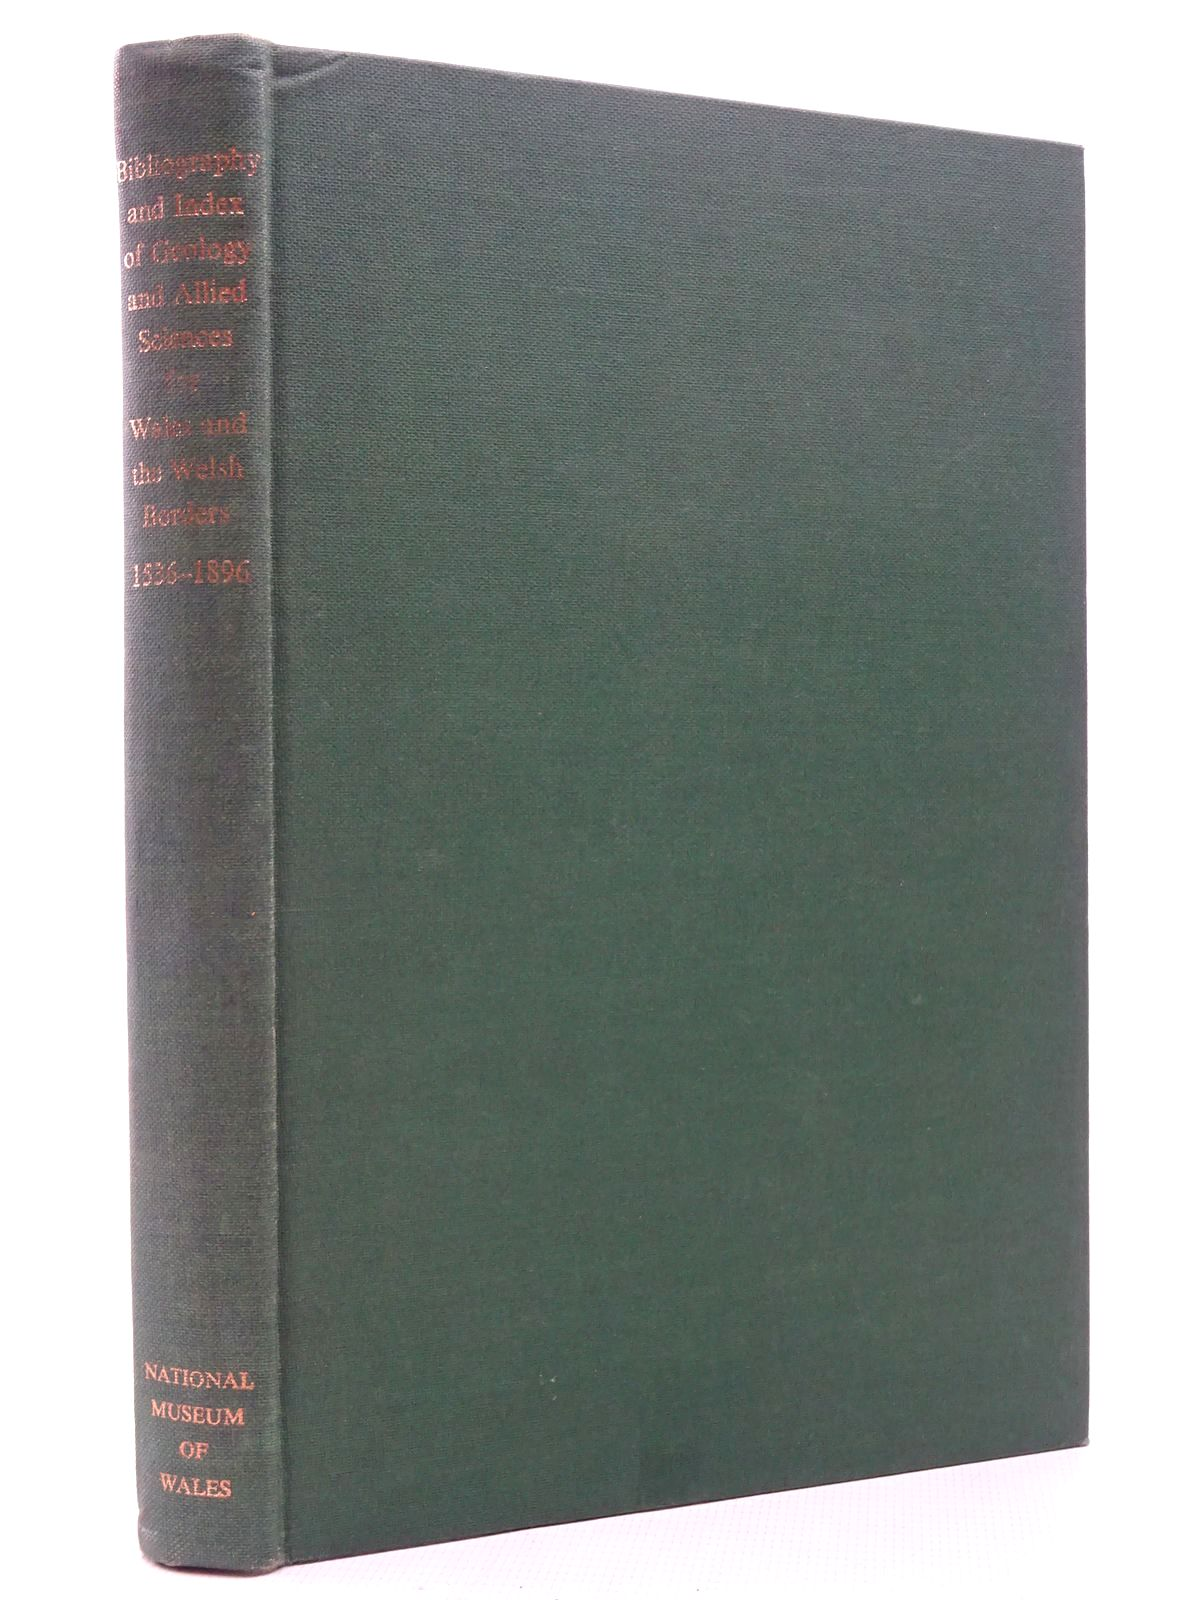 Photo of BIBLIOGRAPHY AND INDEX OF GEOLOGY AND ALLIED SCIENCES FOR WALES AND THE WELSH BORDERS 1536-1836 written by Bassett, Douglas A. published by National Museum of Wales (STOCK CODE: 2124803)  for sale by Stella & Rose's Books